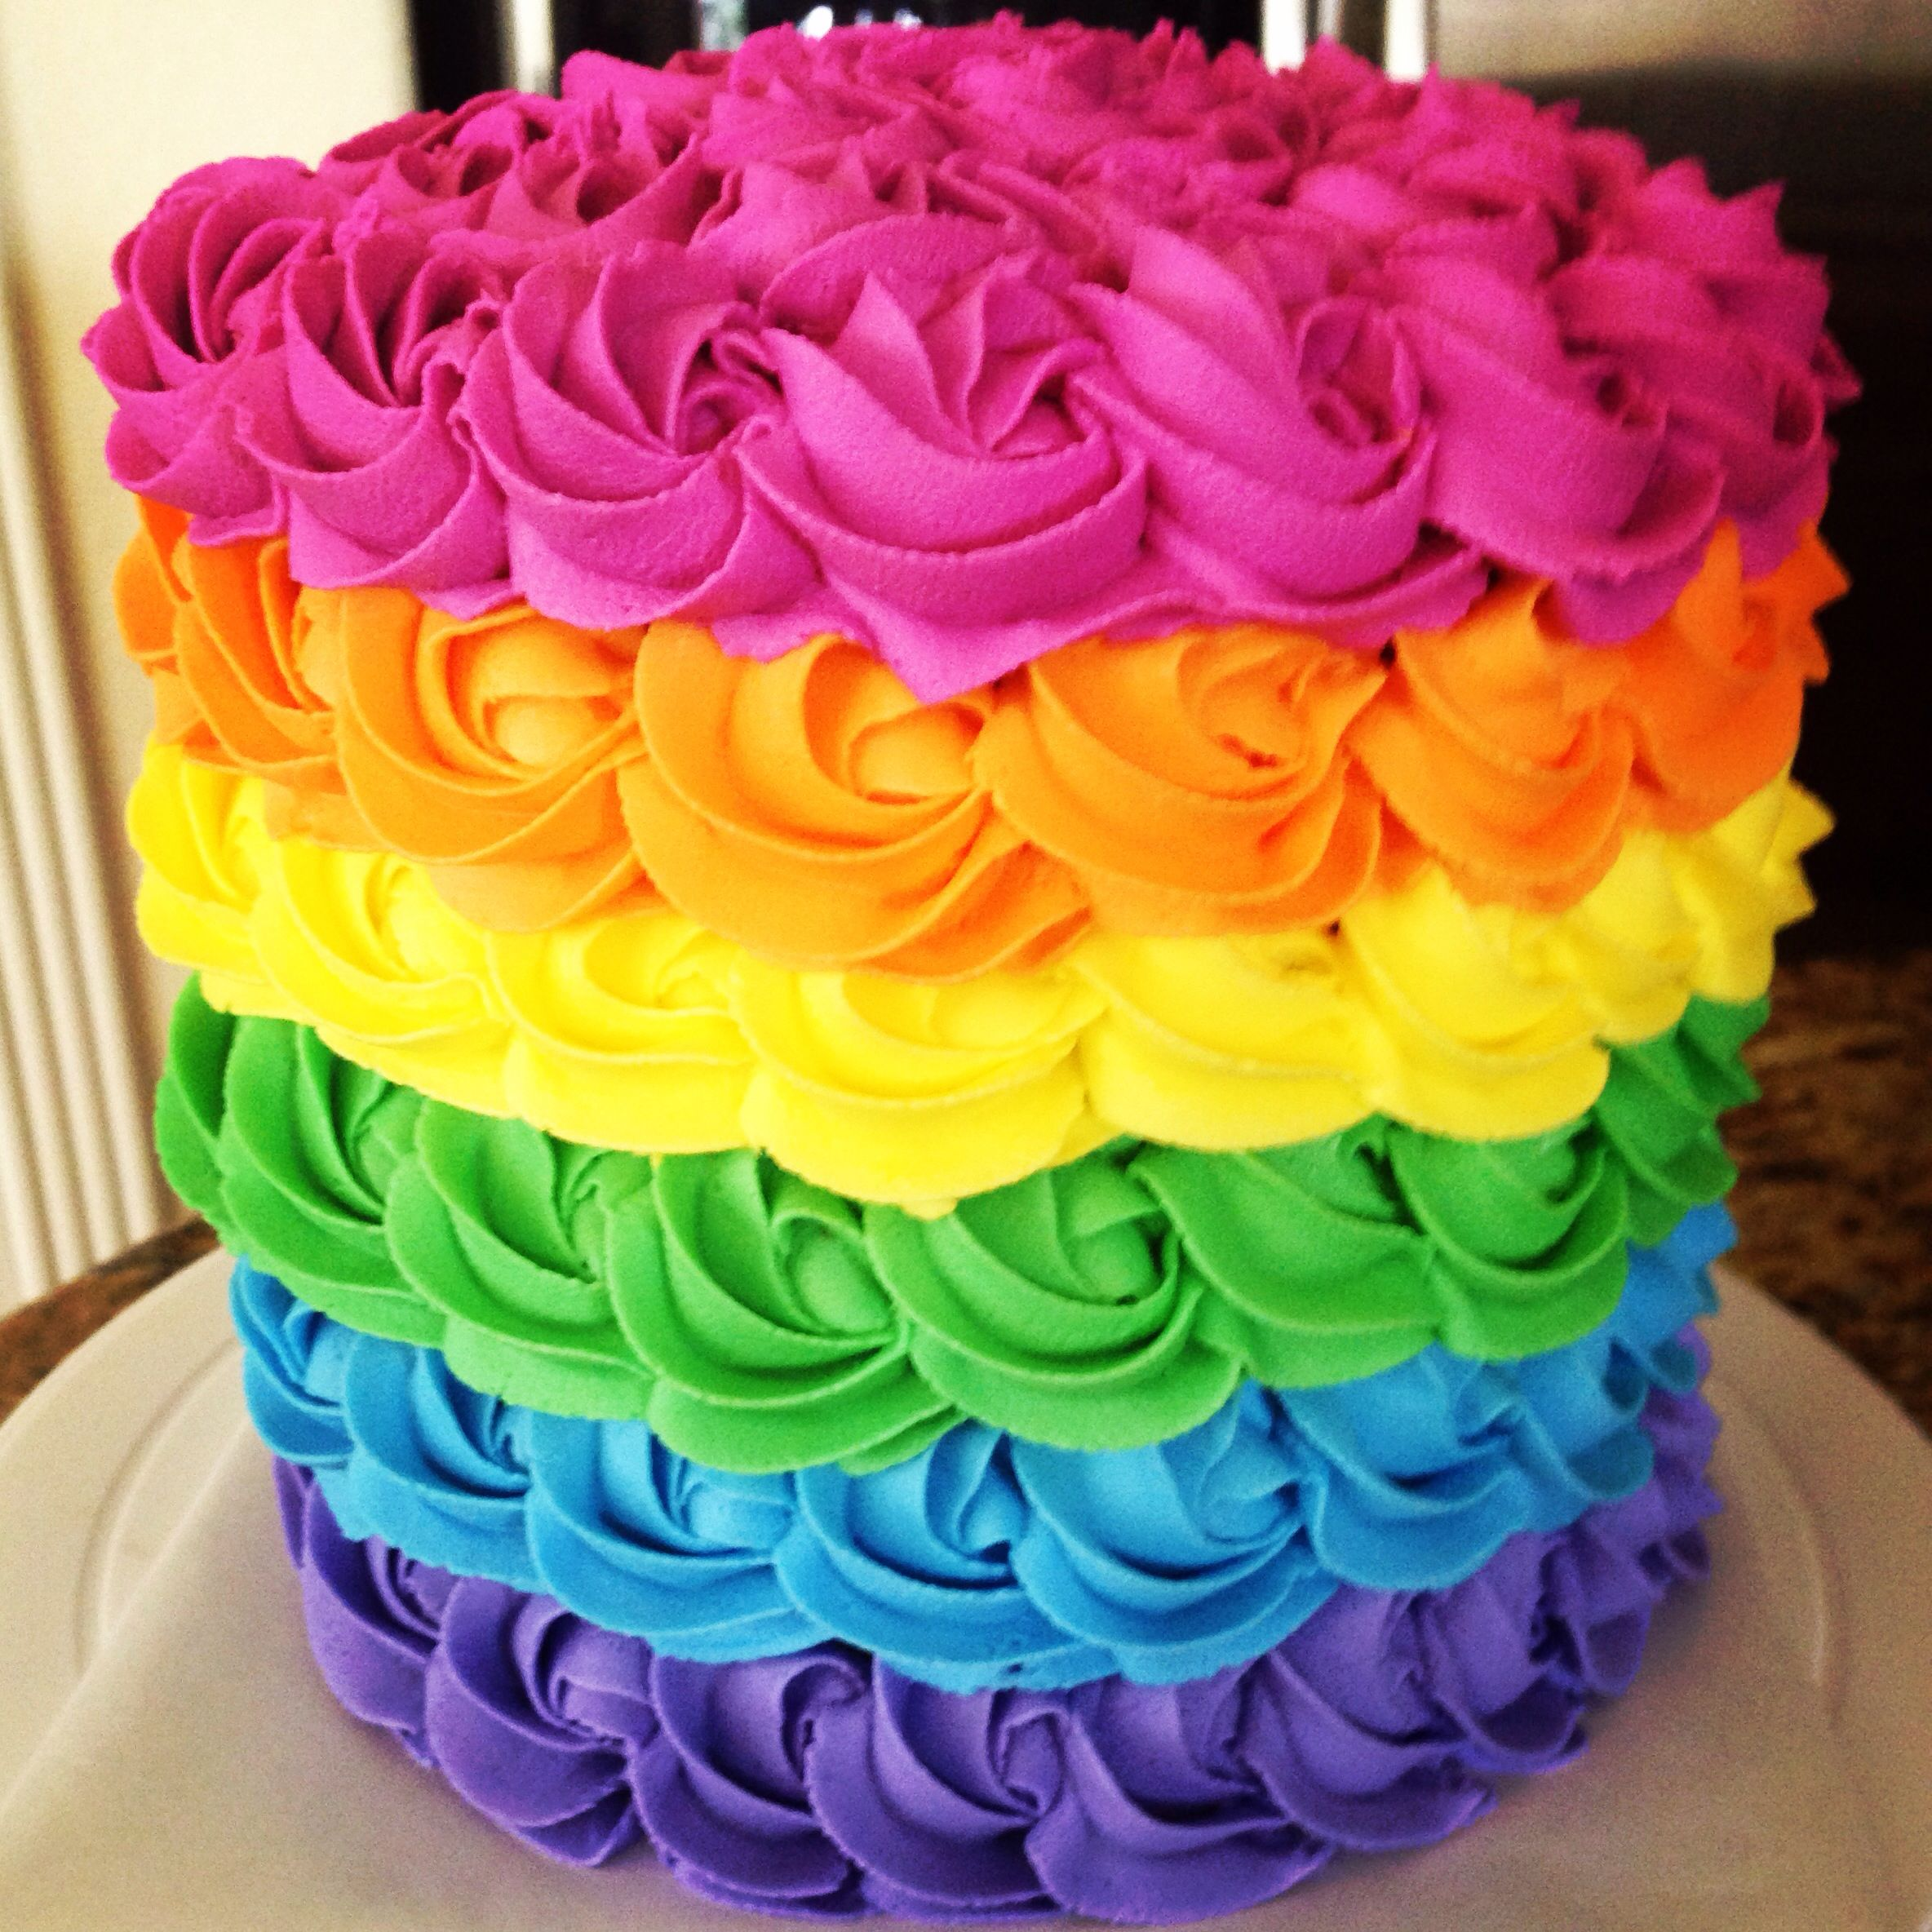 Birthday Cake Rainbow Design : Rainbow cake #2. Stunning inside and out. Moist almond ...